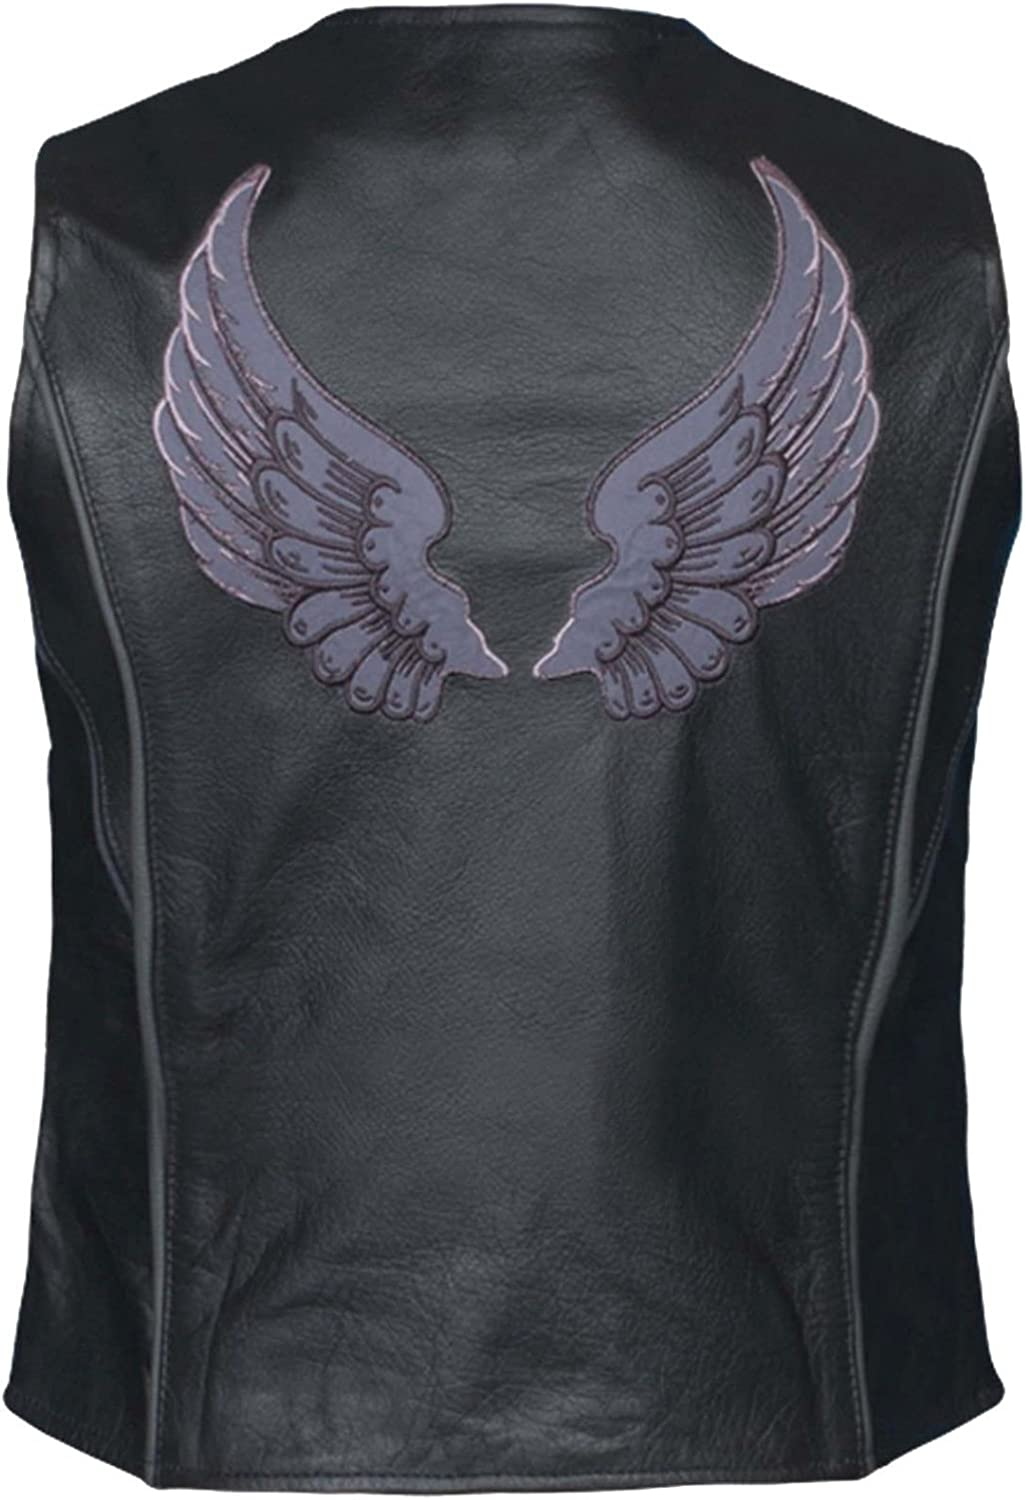 Unik Motorcycle Womens BLK Leather Grey Tribal Wing Back HIGH Visibility Reflective